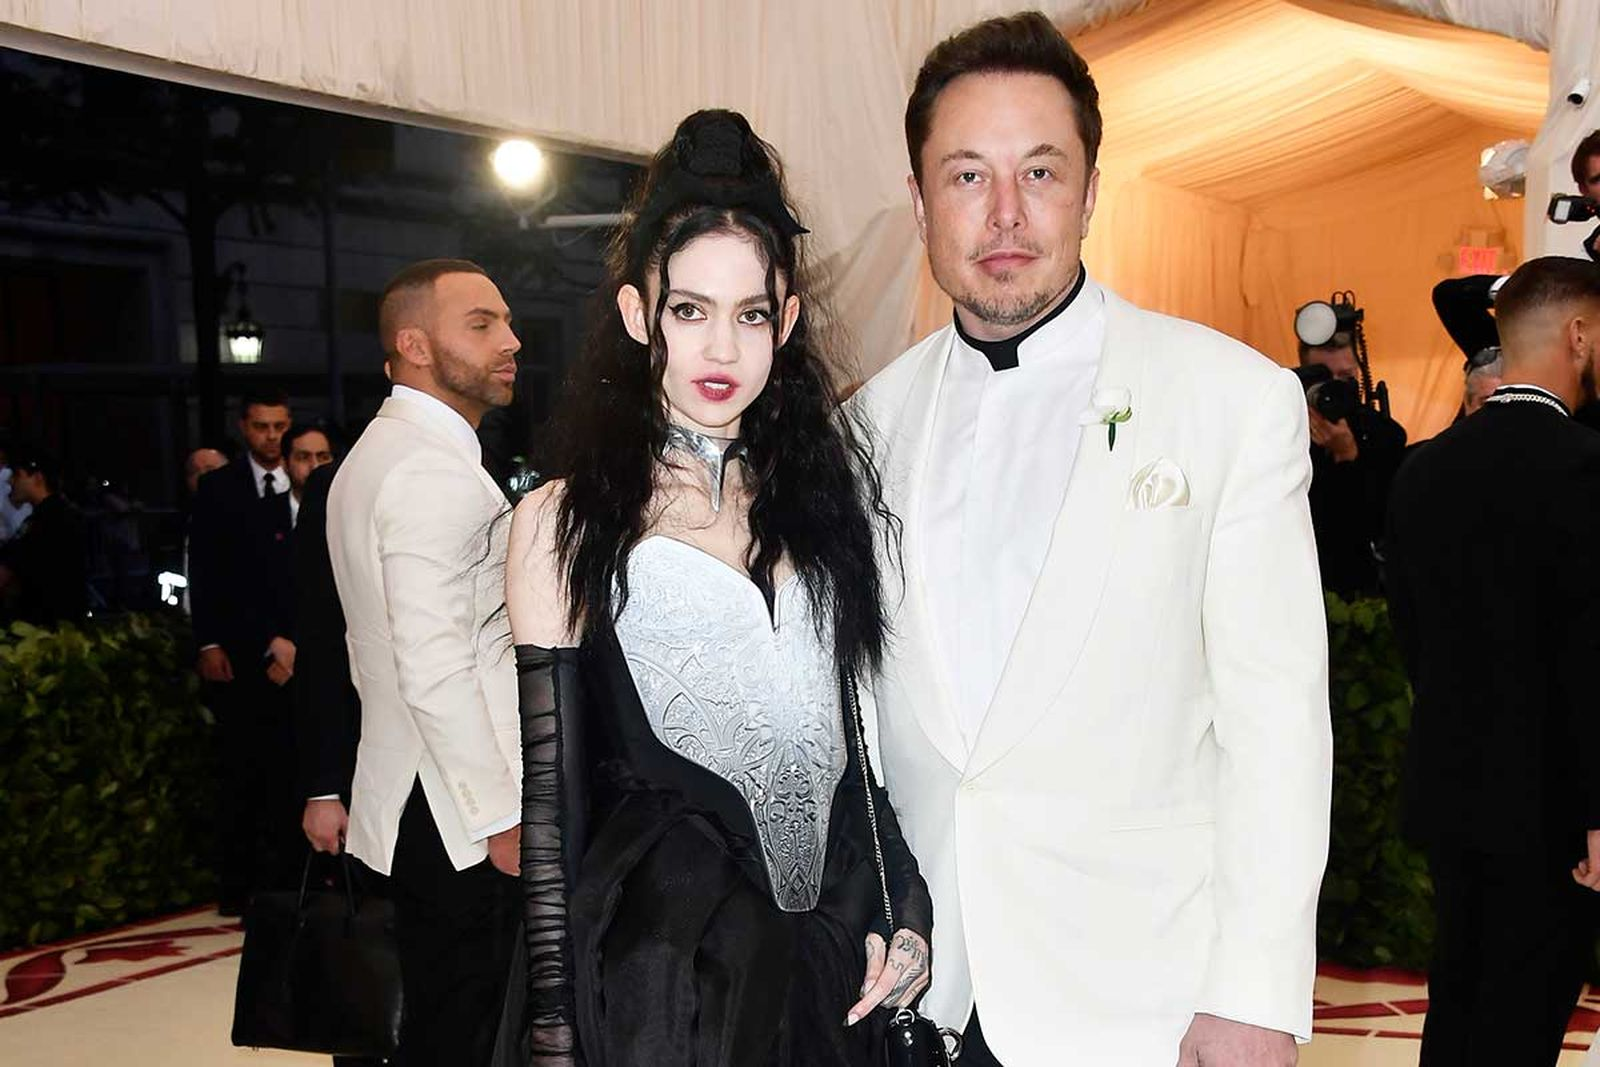 Grimes and Elon Musk at the MET Gala 2018